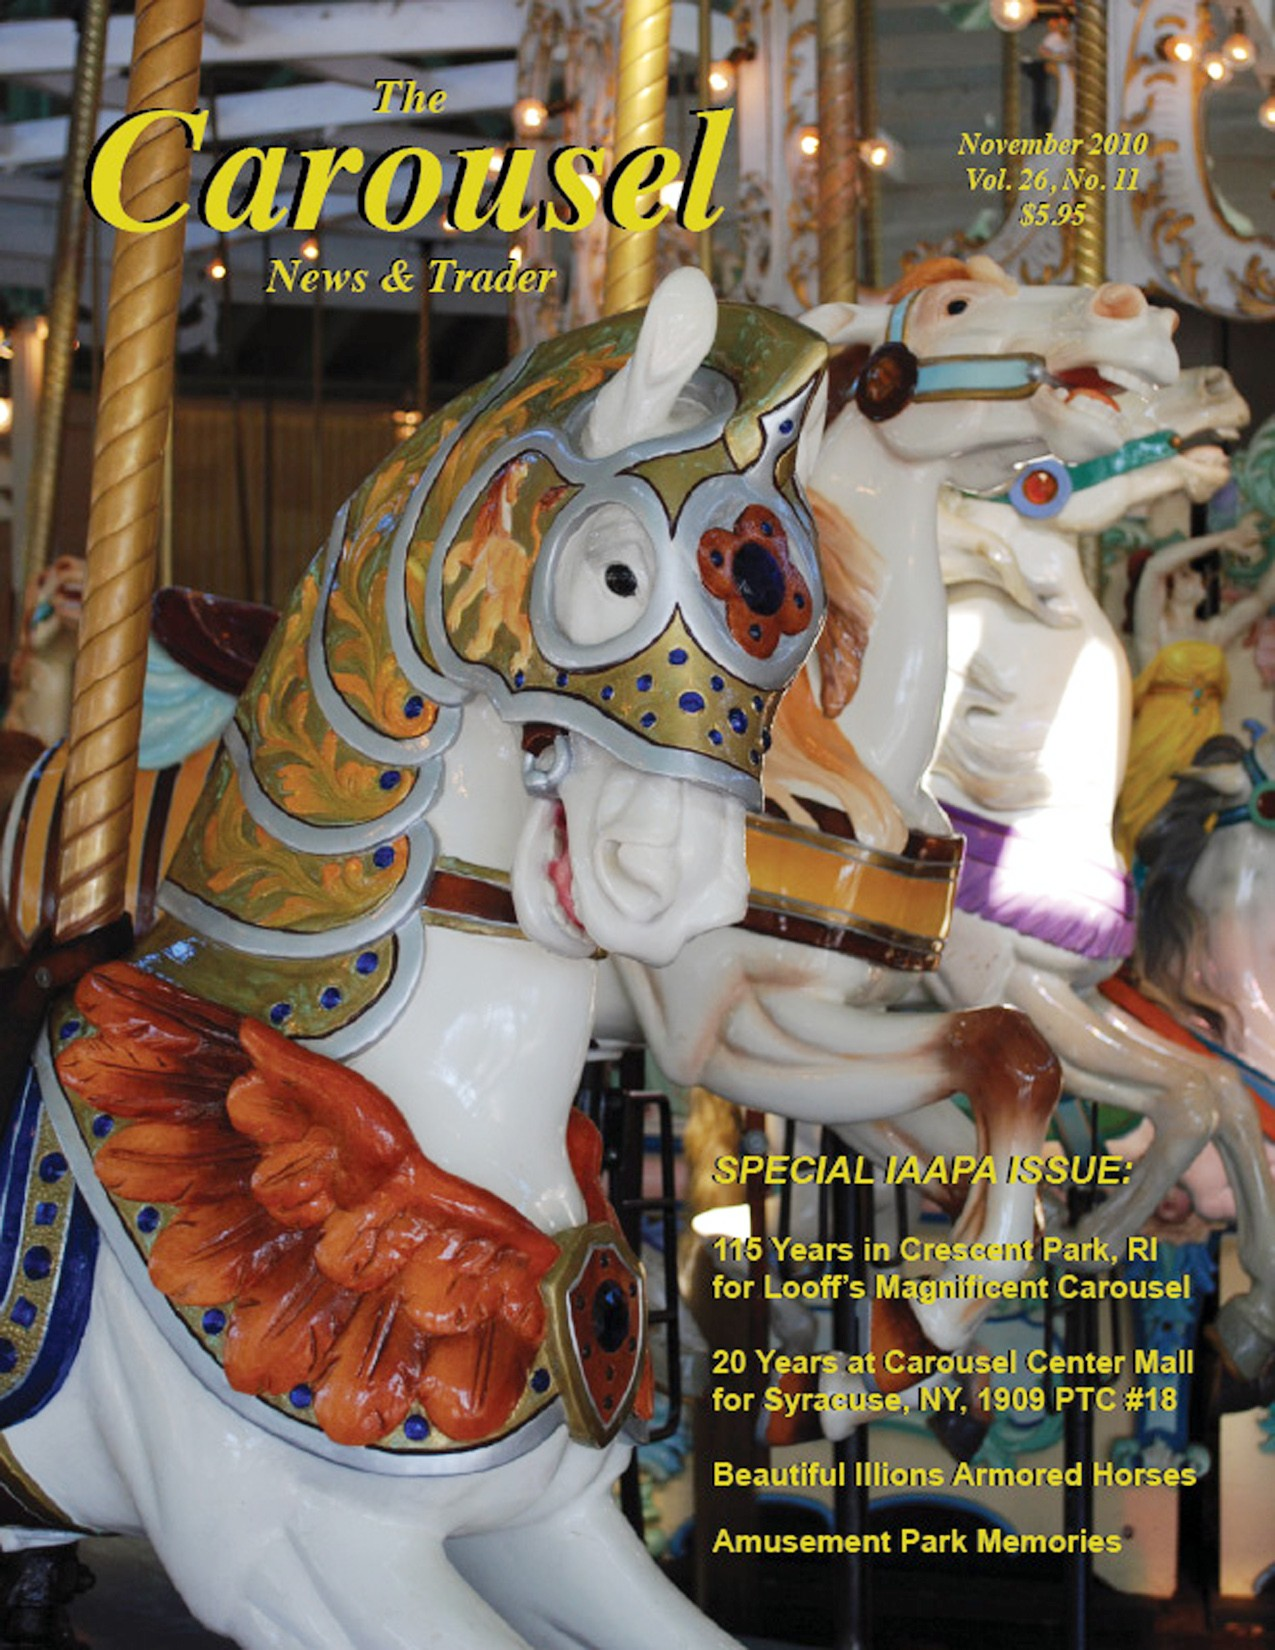 Carousel-news-cover-11-Crescent-Park-Looff-carousel-November-2010